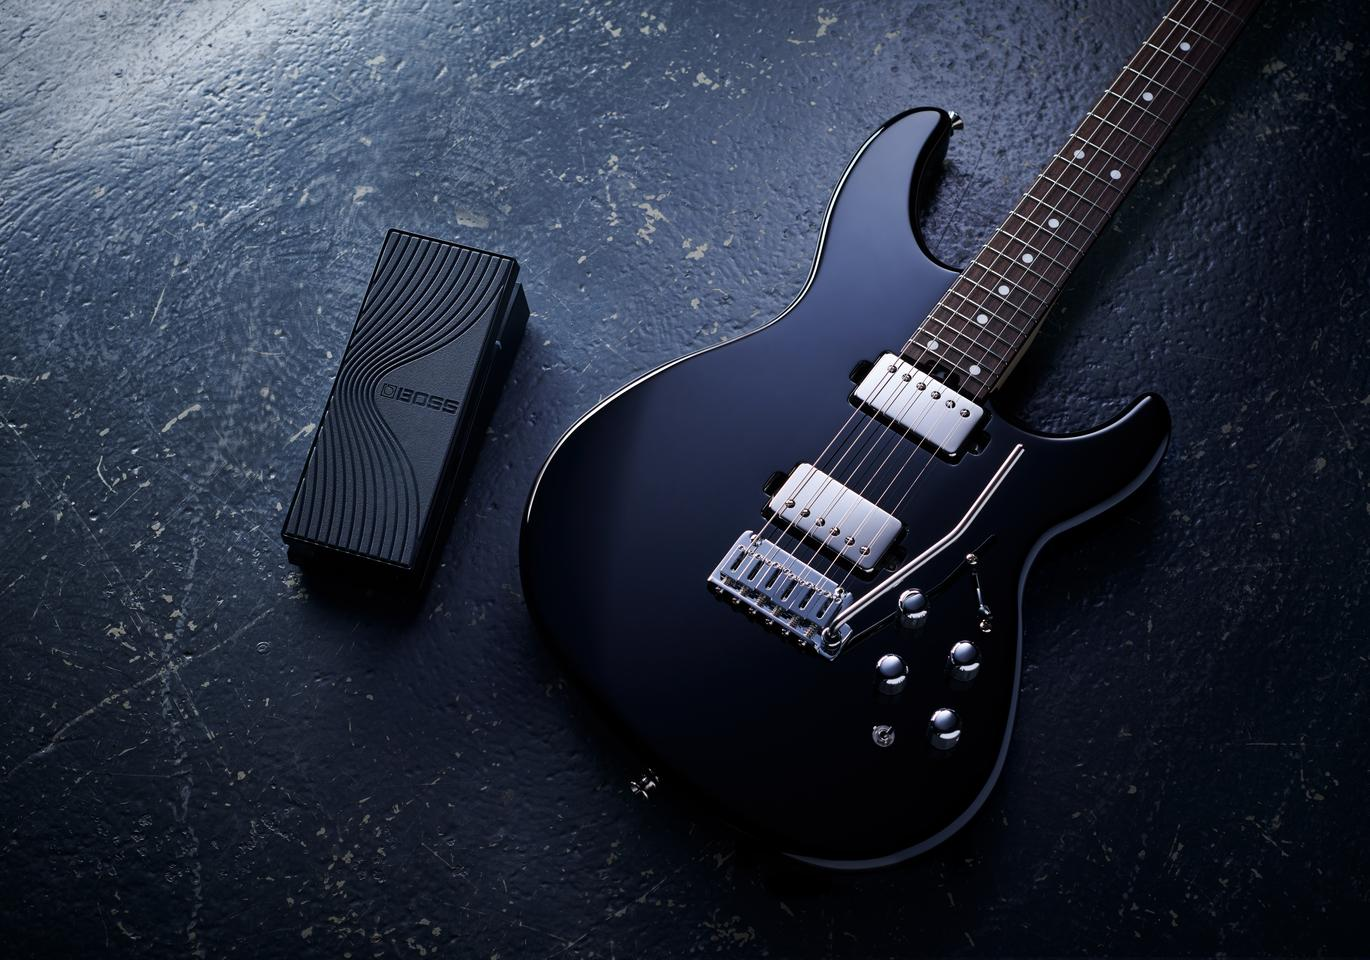 An optional wireless MIDI expression pedal accompanies the release of the Eurus GS-1 Electronic Guitar, which allows players cable-free control of the synth engine